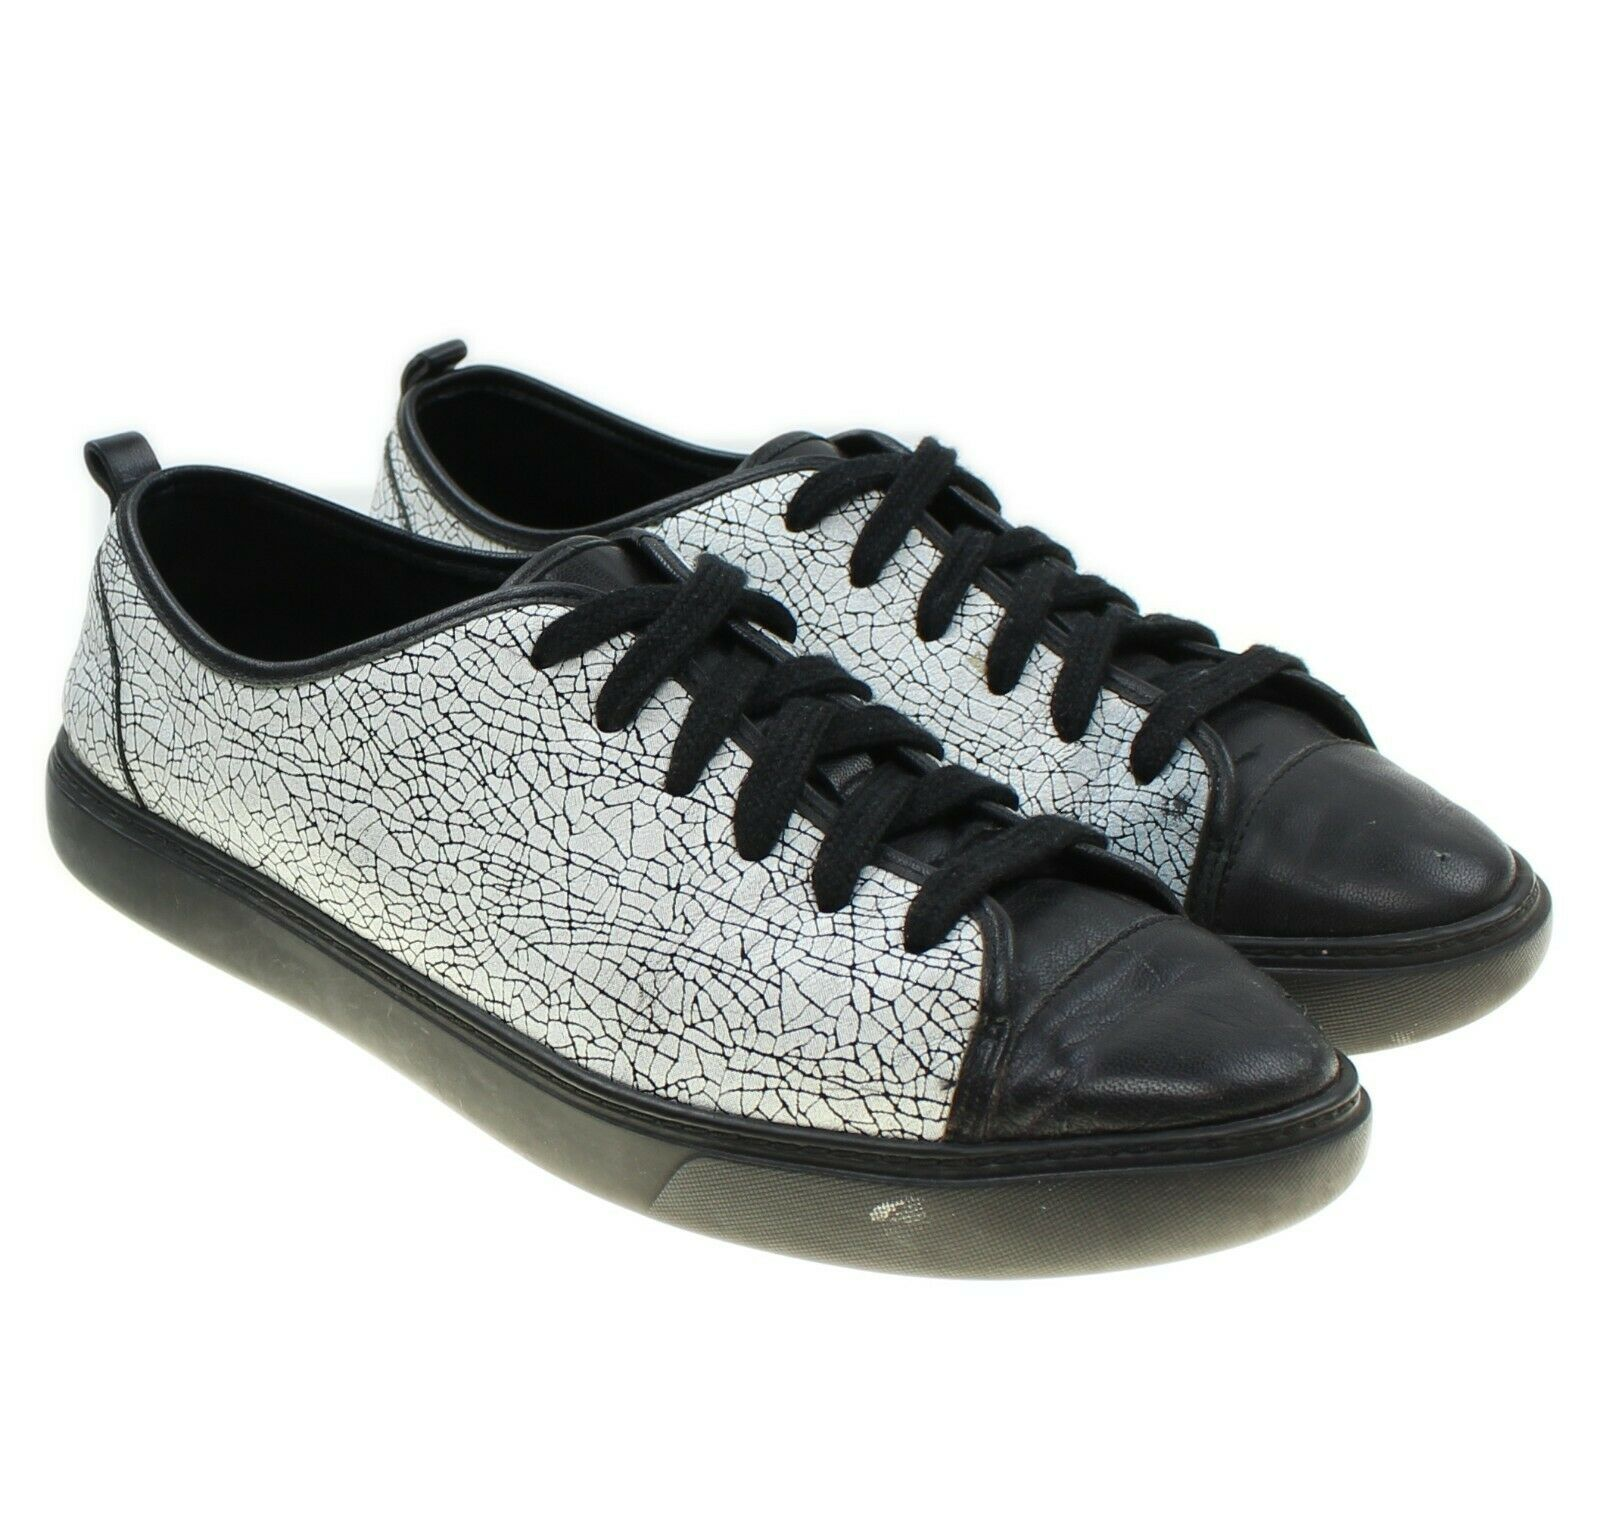 COLE HAAN Grand Womens White Black Leather Crackle Pattern Low Top Sneakers 6.5 - $47.01 CAD